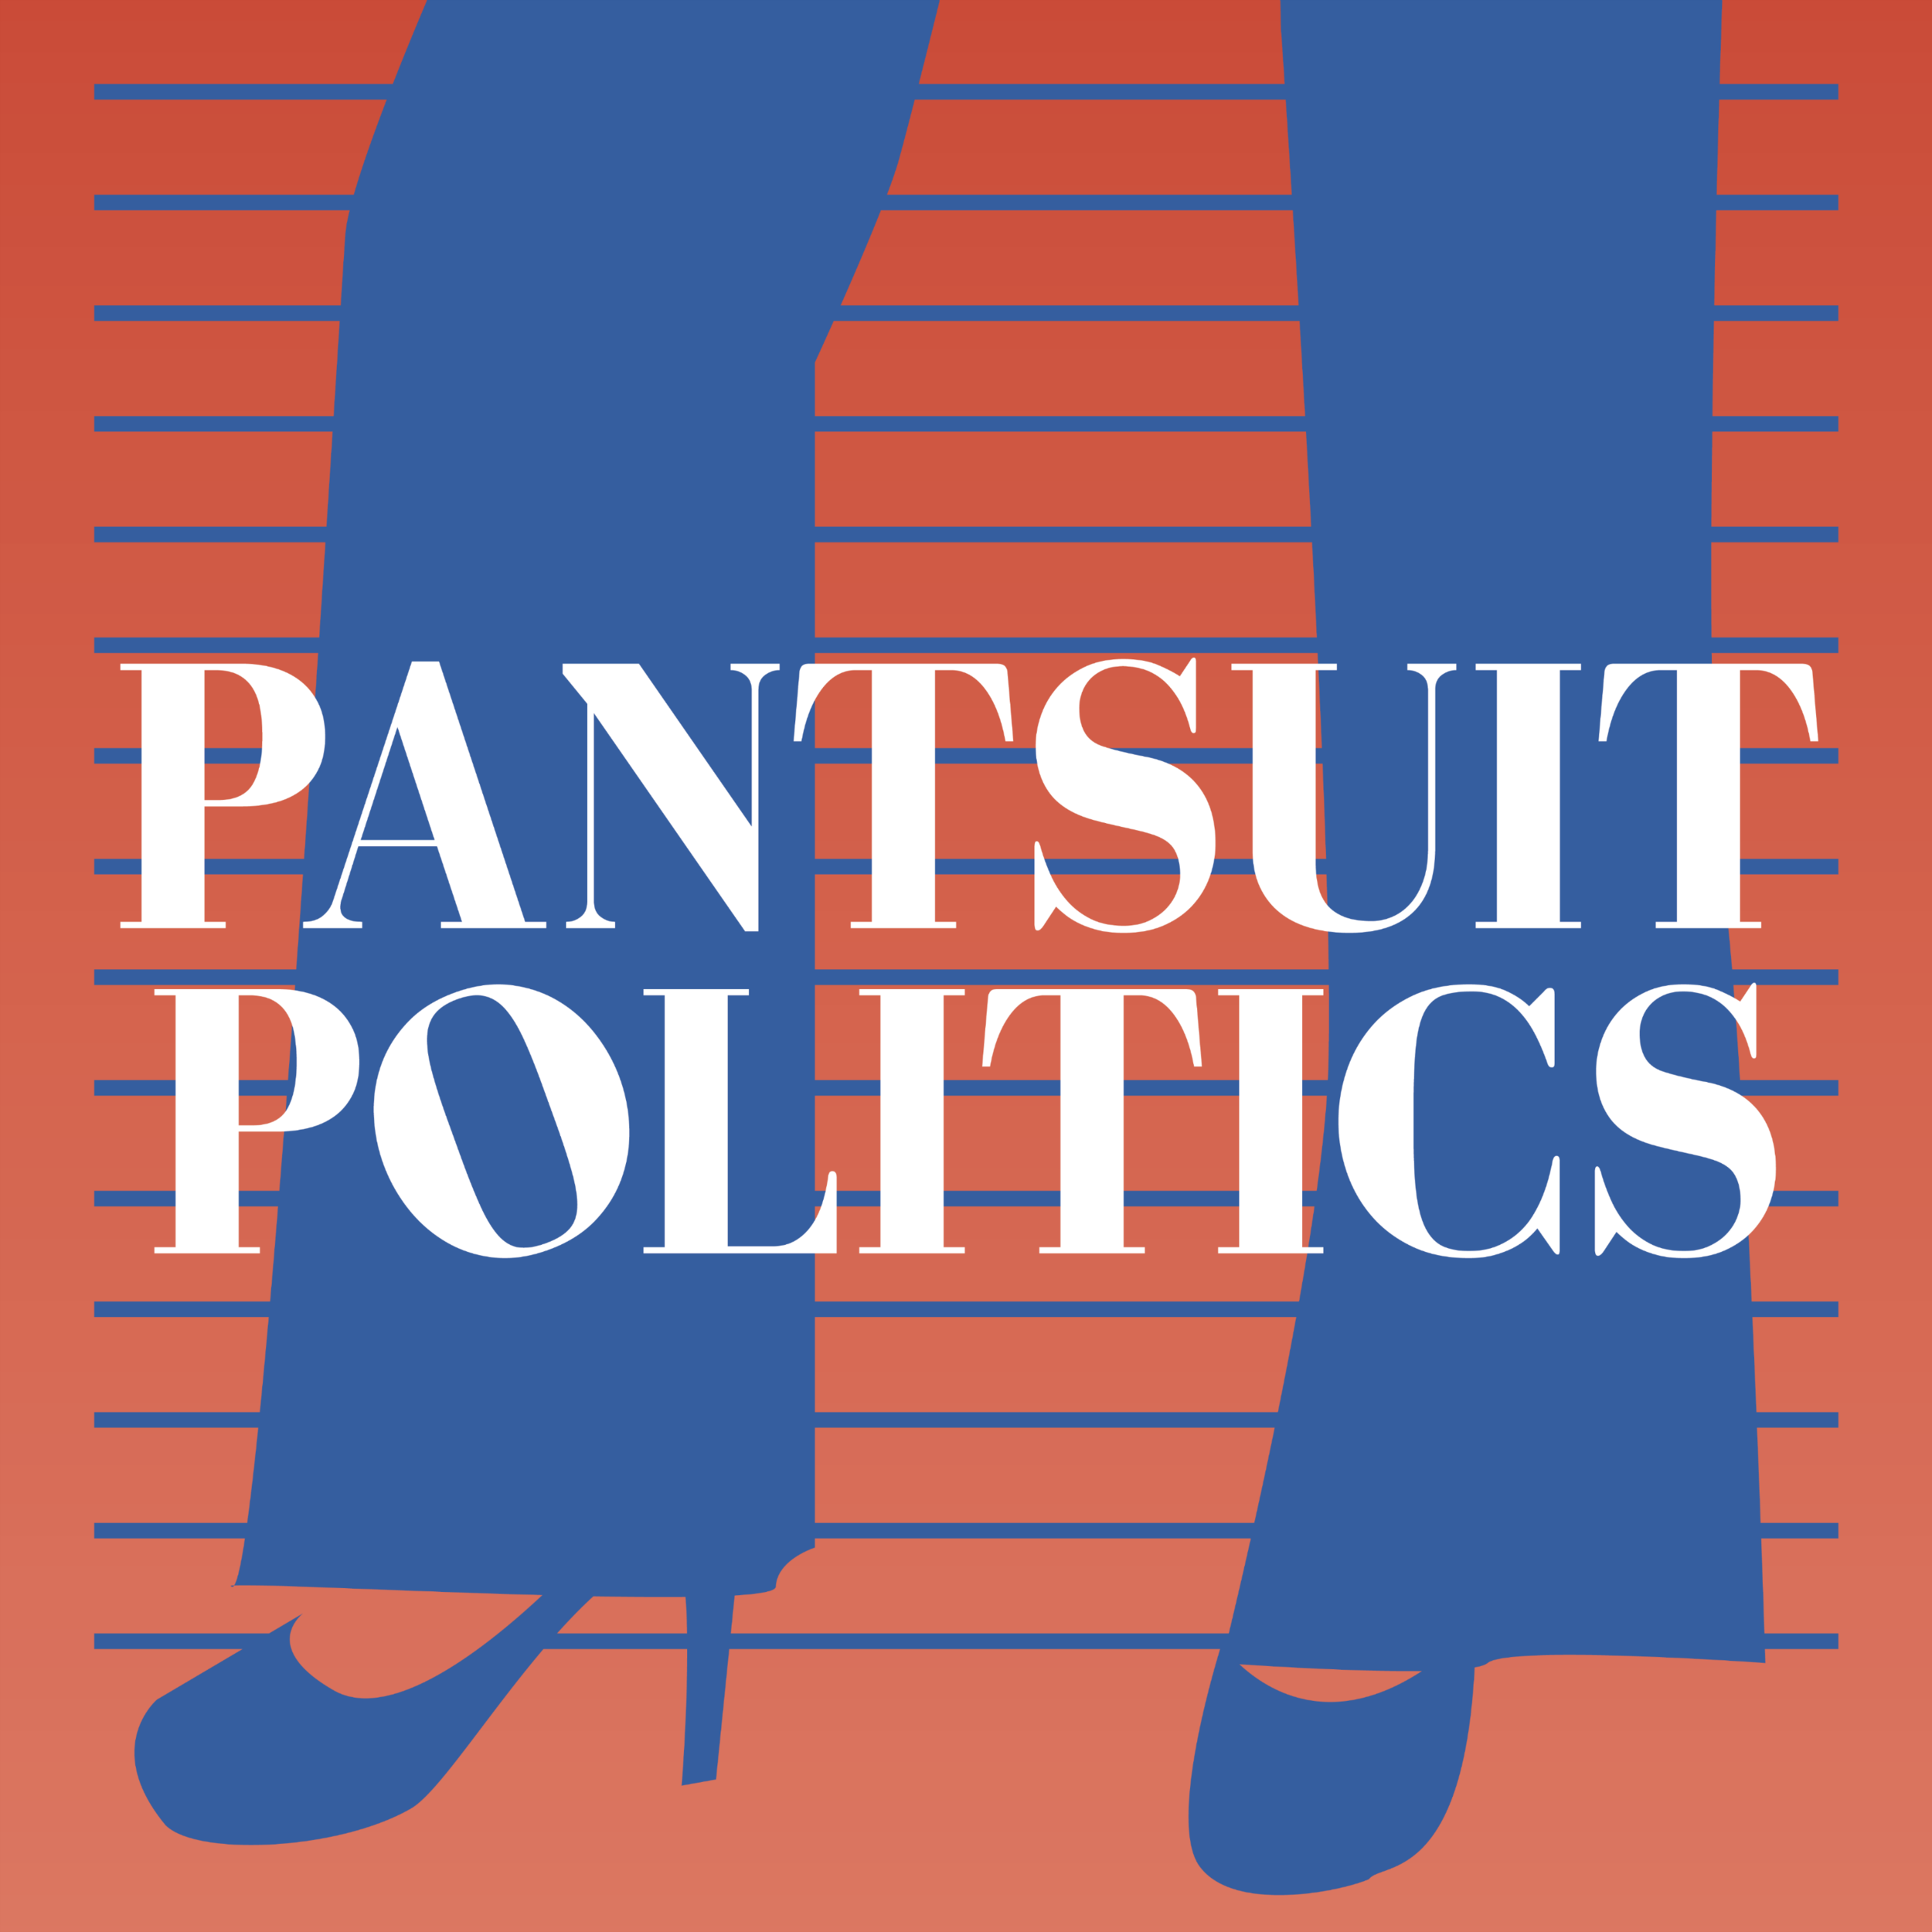 pantsuit_Red-Blue3000.png